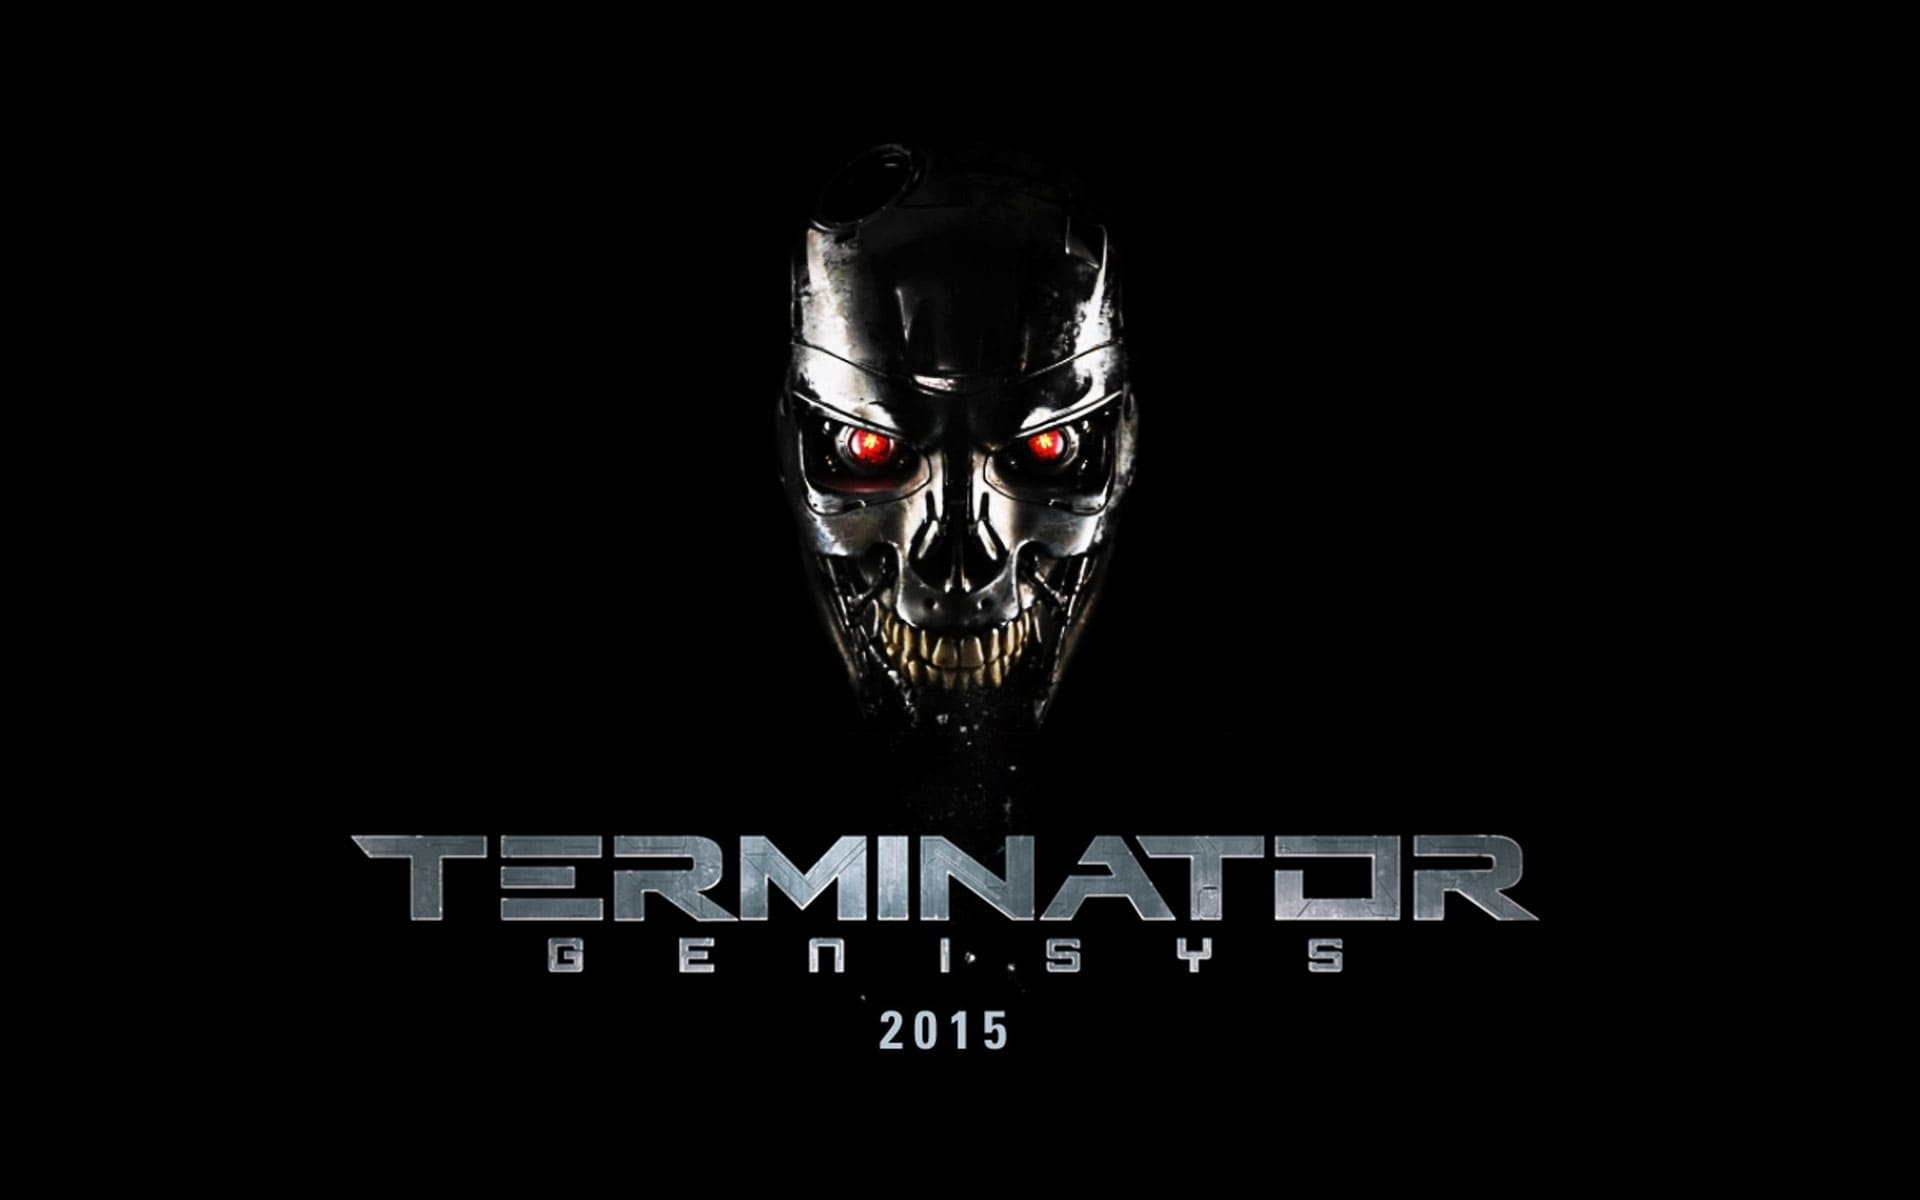 Terminator: Genisys Wallpapers